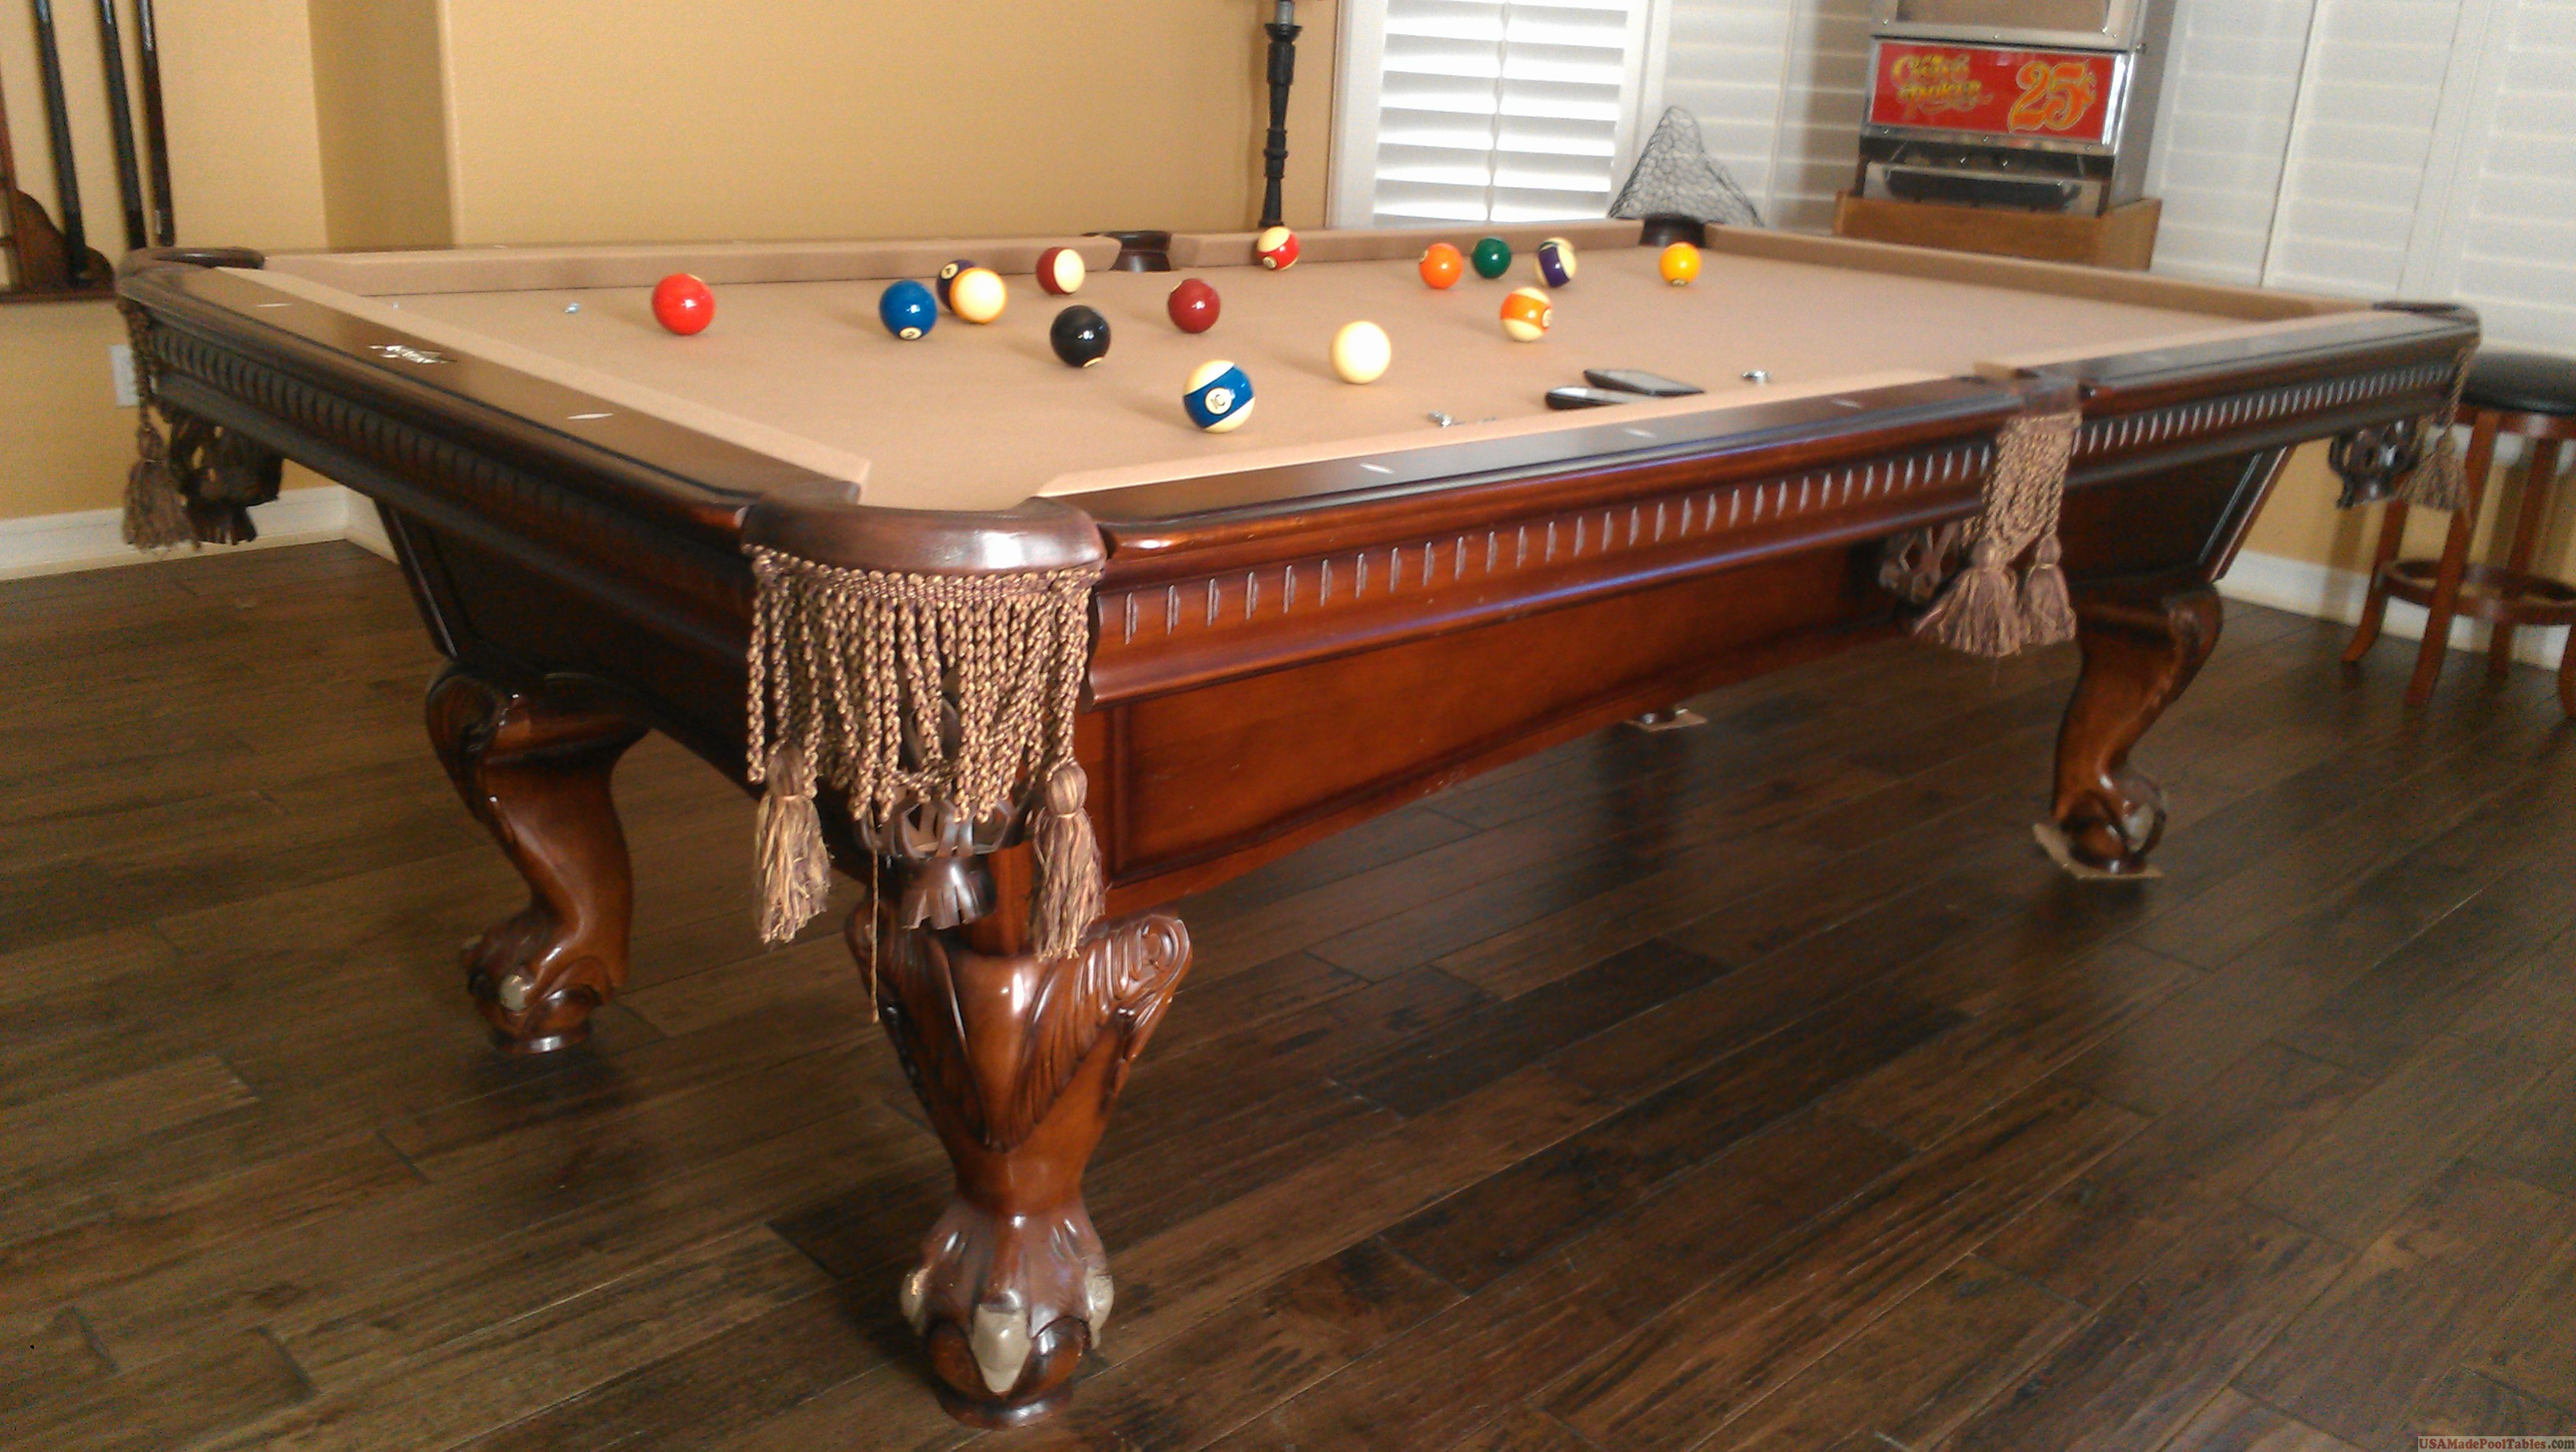 Attrayant POOL TABLES : POOL TABLE